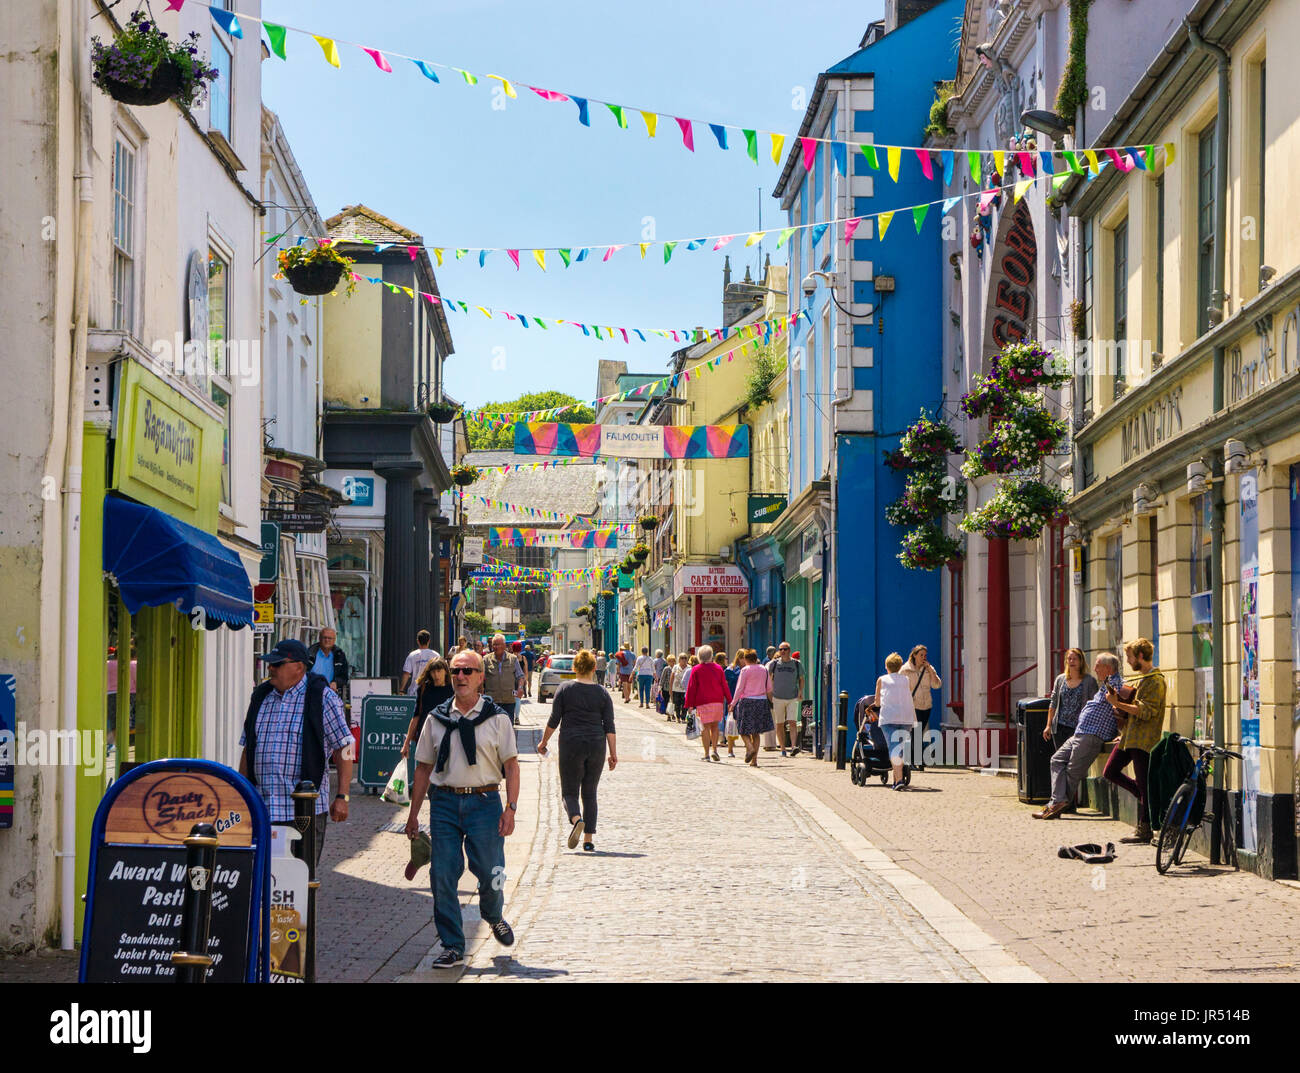 High street uk - Falmouth town centre with people shopping in the summer, Falmouth, Cornwall, Westcountry, UK - Stock Image